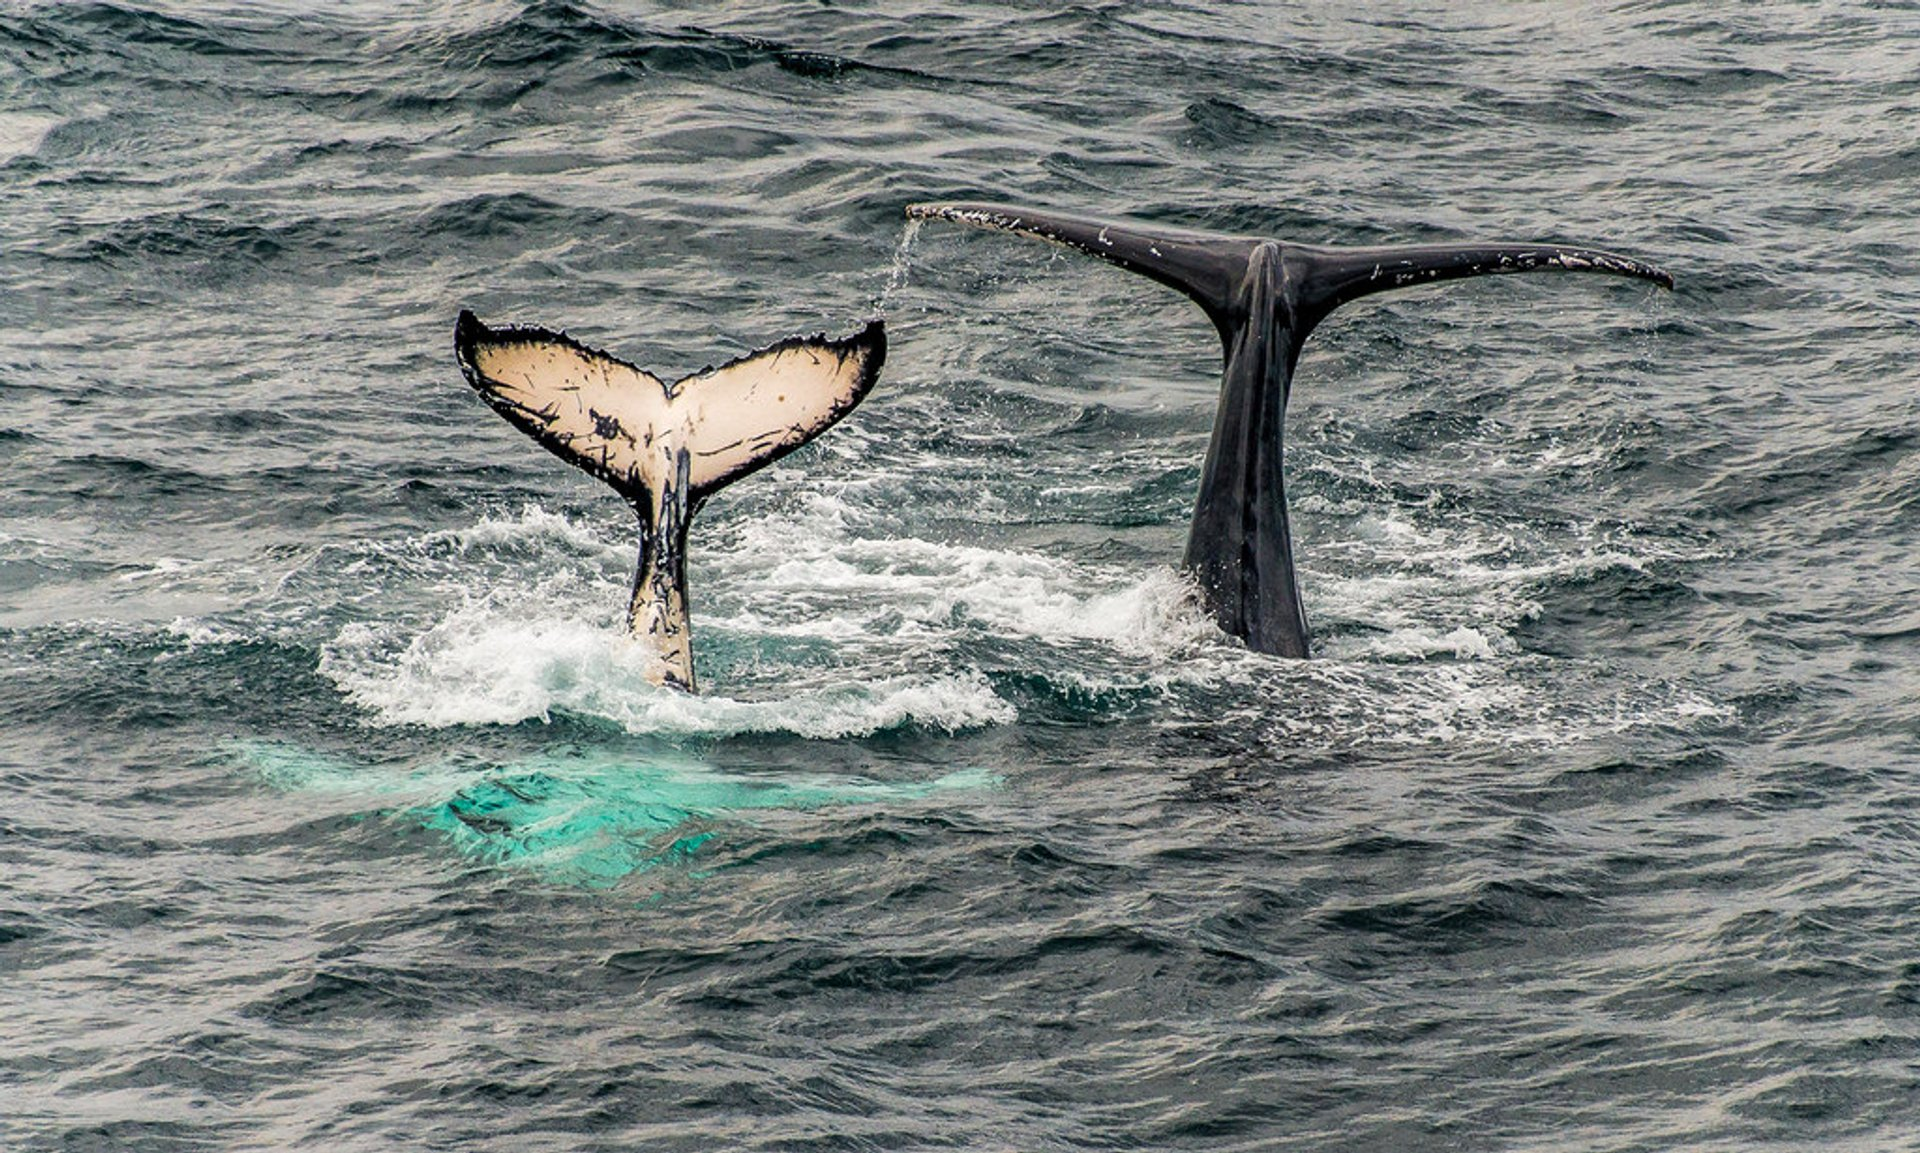 A tale of Two Tails.... a mature Humpback whale along with its calf spotted off the coast near Terrigal, New South Wales, Australia 2020